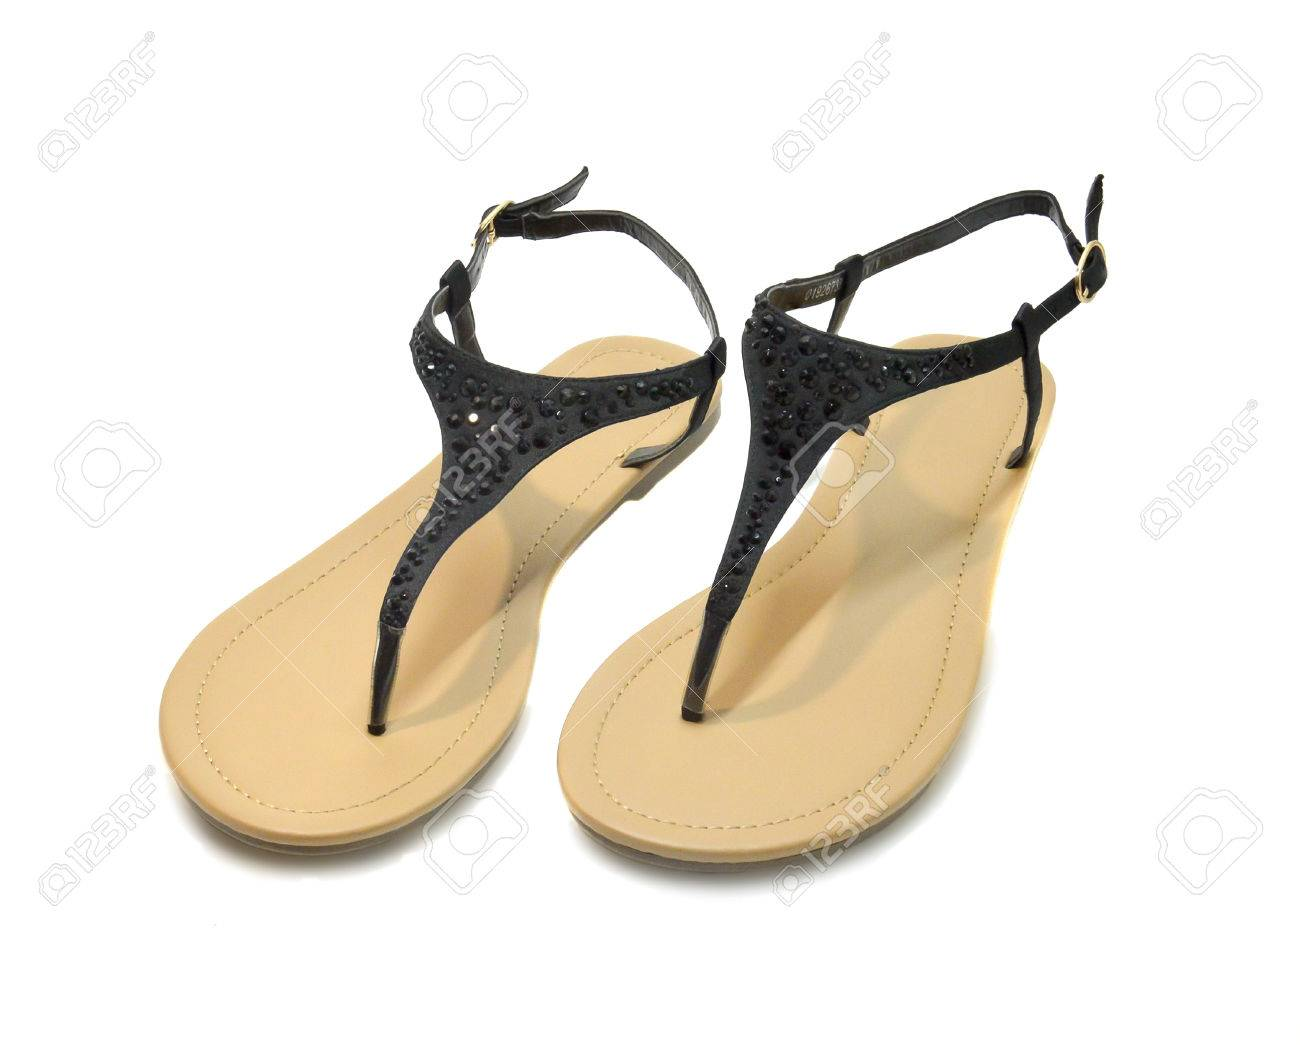 Sandals with rhinestones. Sandals black with rhinestones. Photo on a white  background Stock Photo